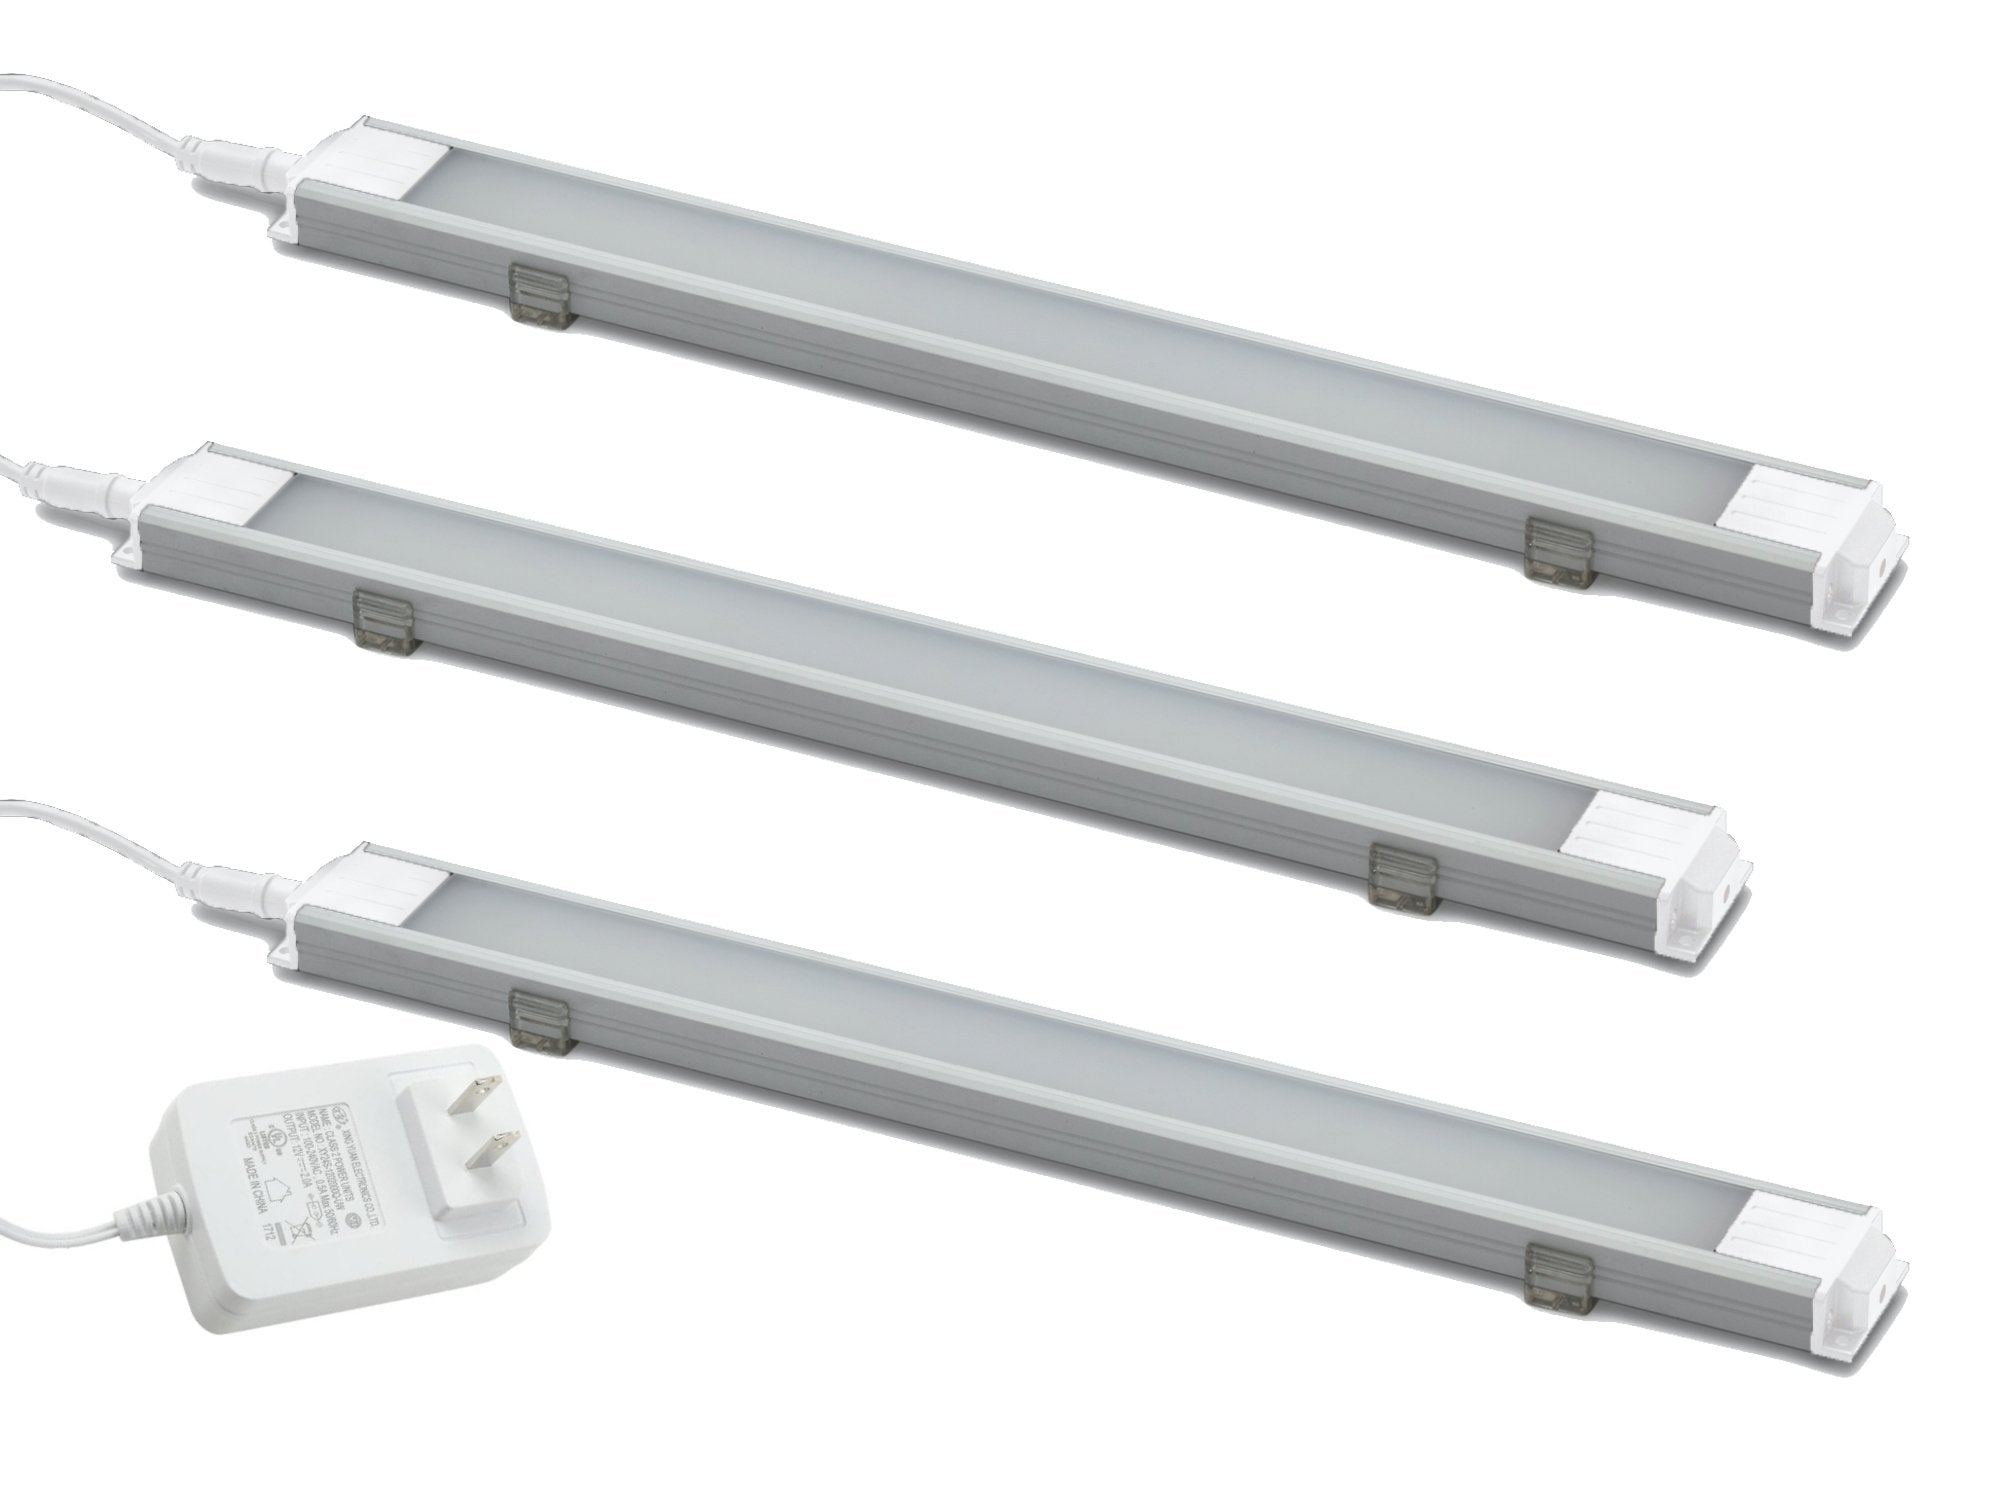 LED Display Lights (2 x Light Adapters, 1 x Light Extensions)